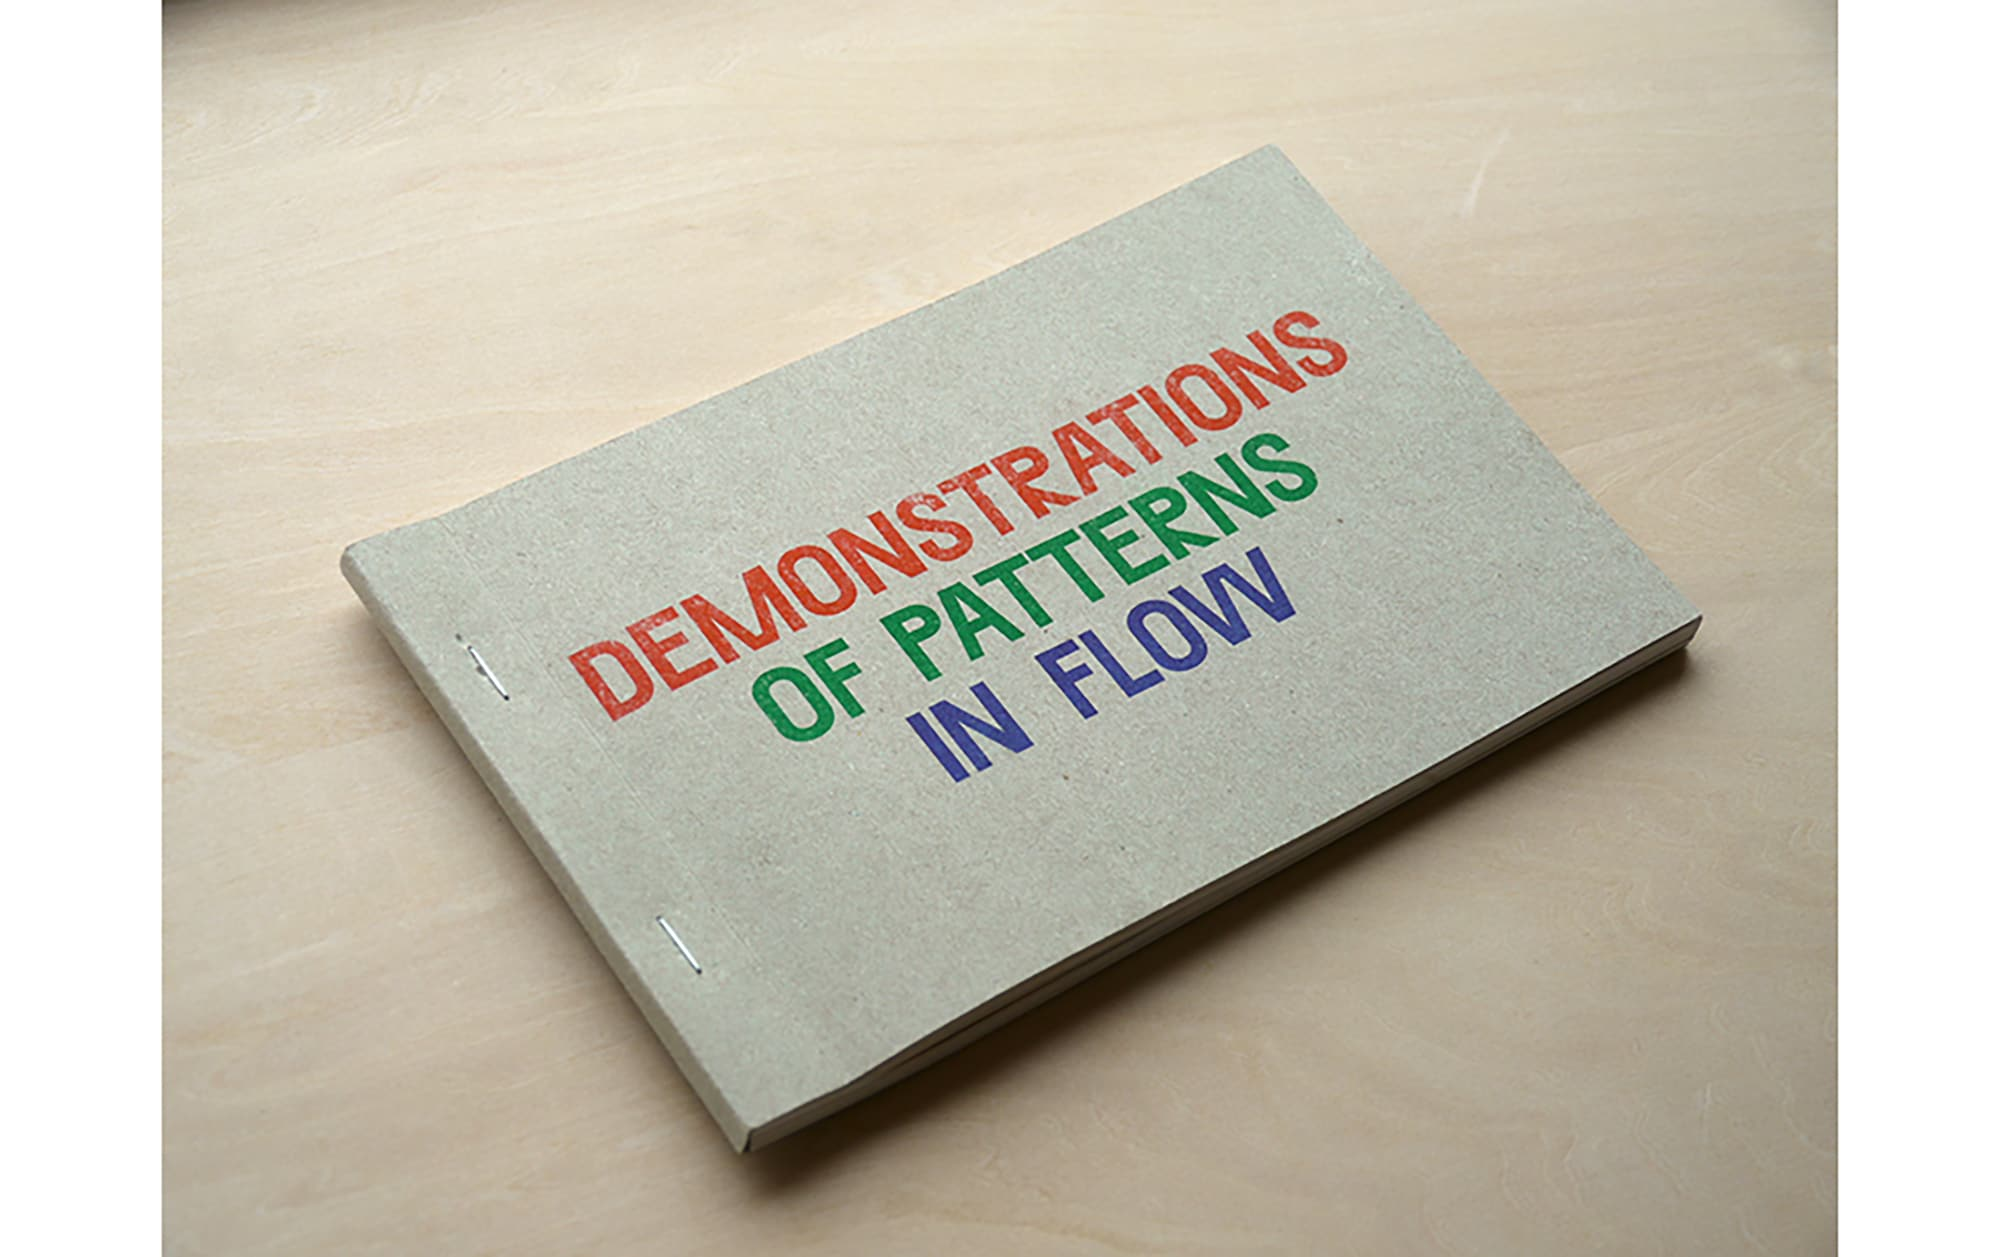 Oliver Griffin『DEMONSTRATIONS OF PATTERNS IN FLOW』